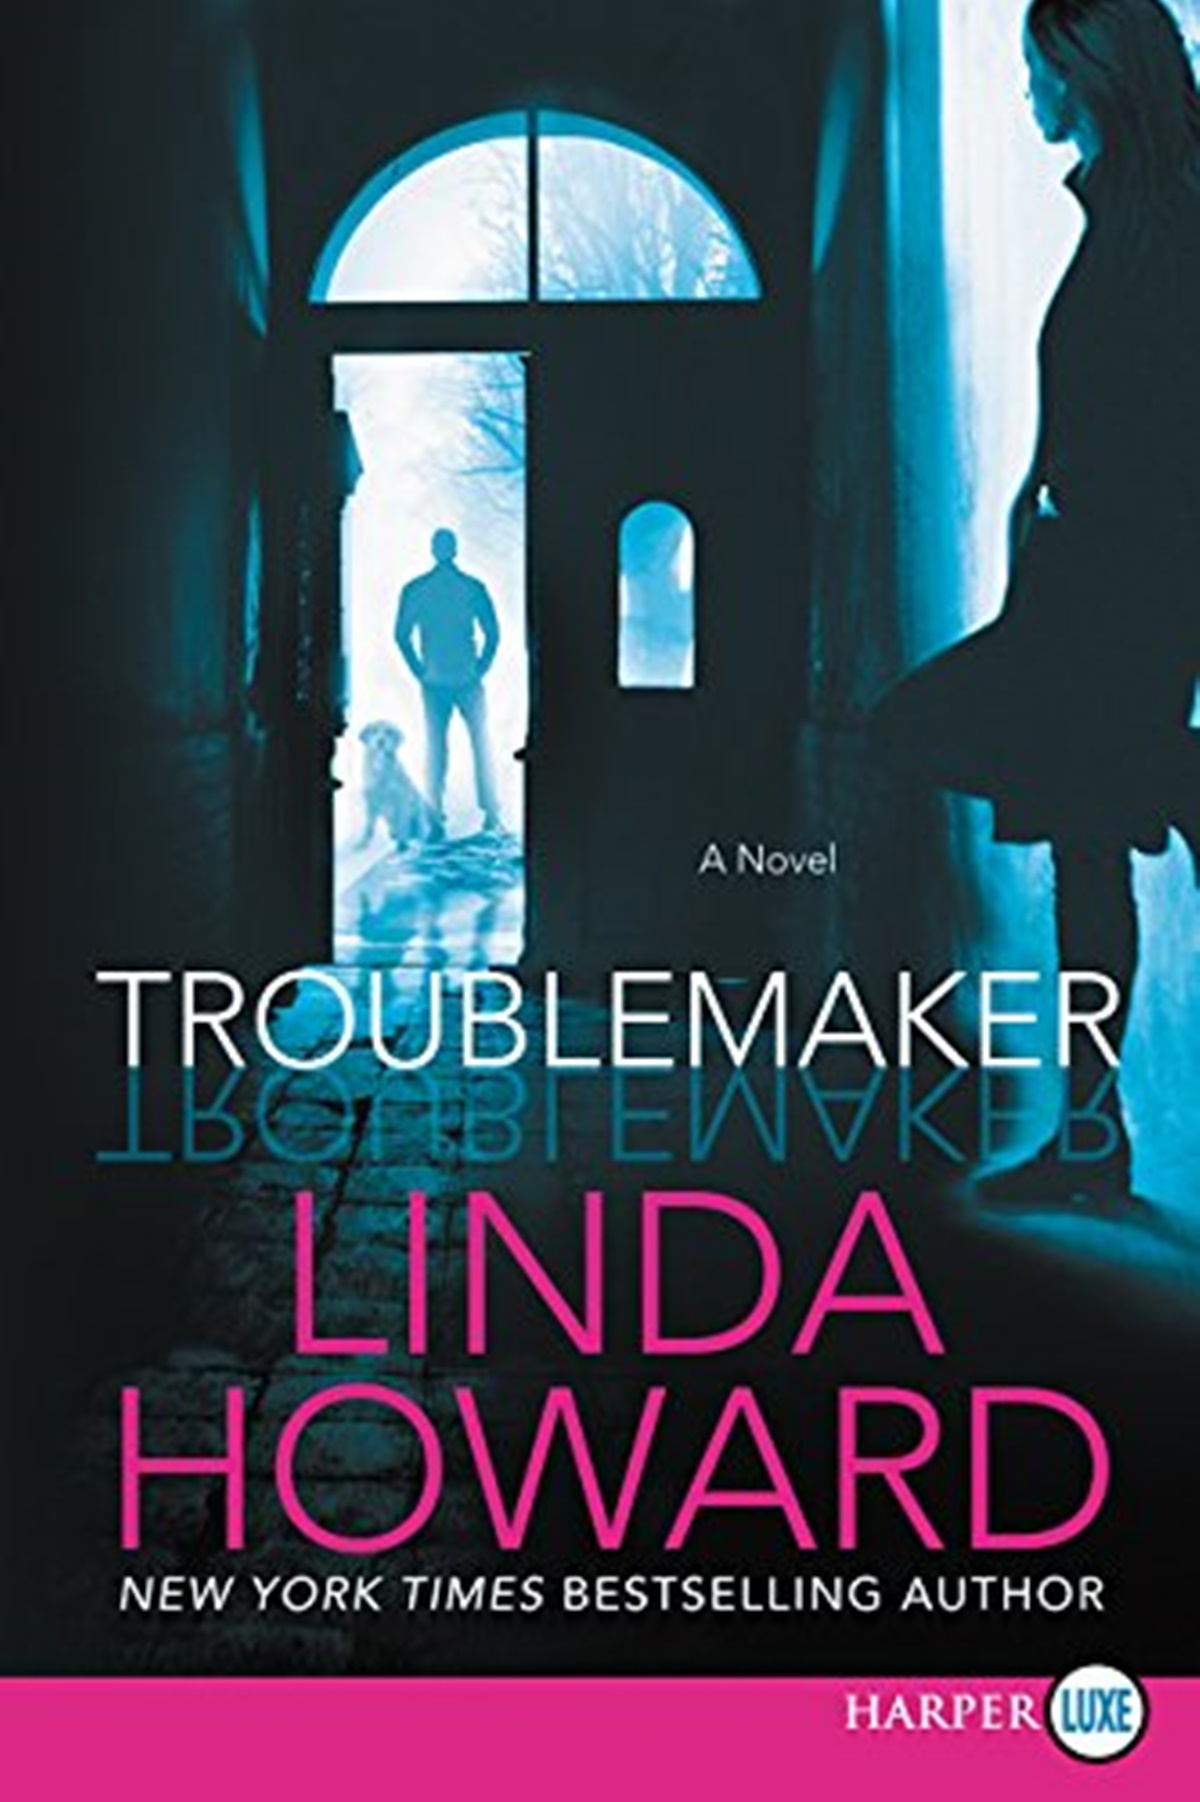 Dog Romance Novels, cover of Troublemaker by Linda Howard, books